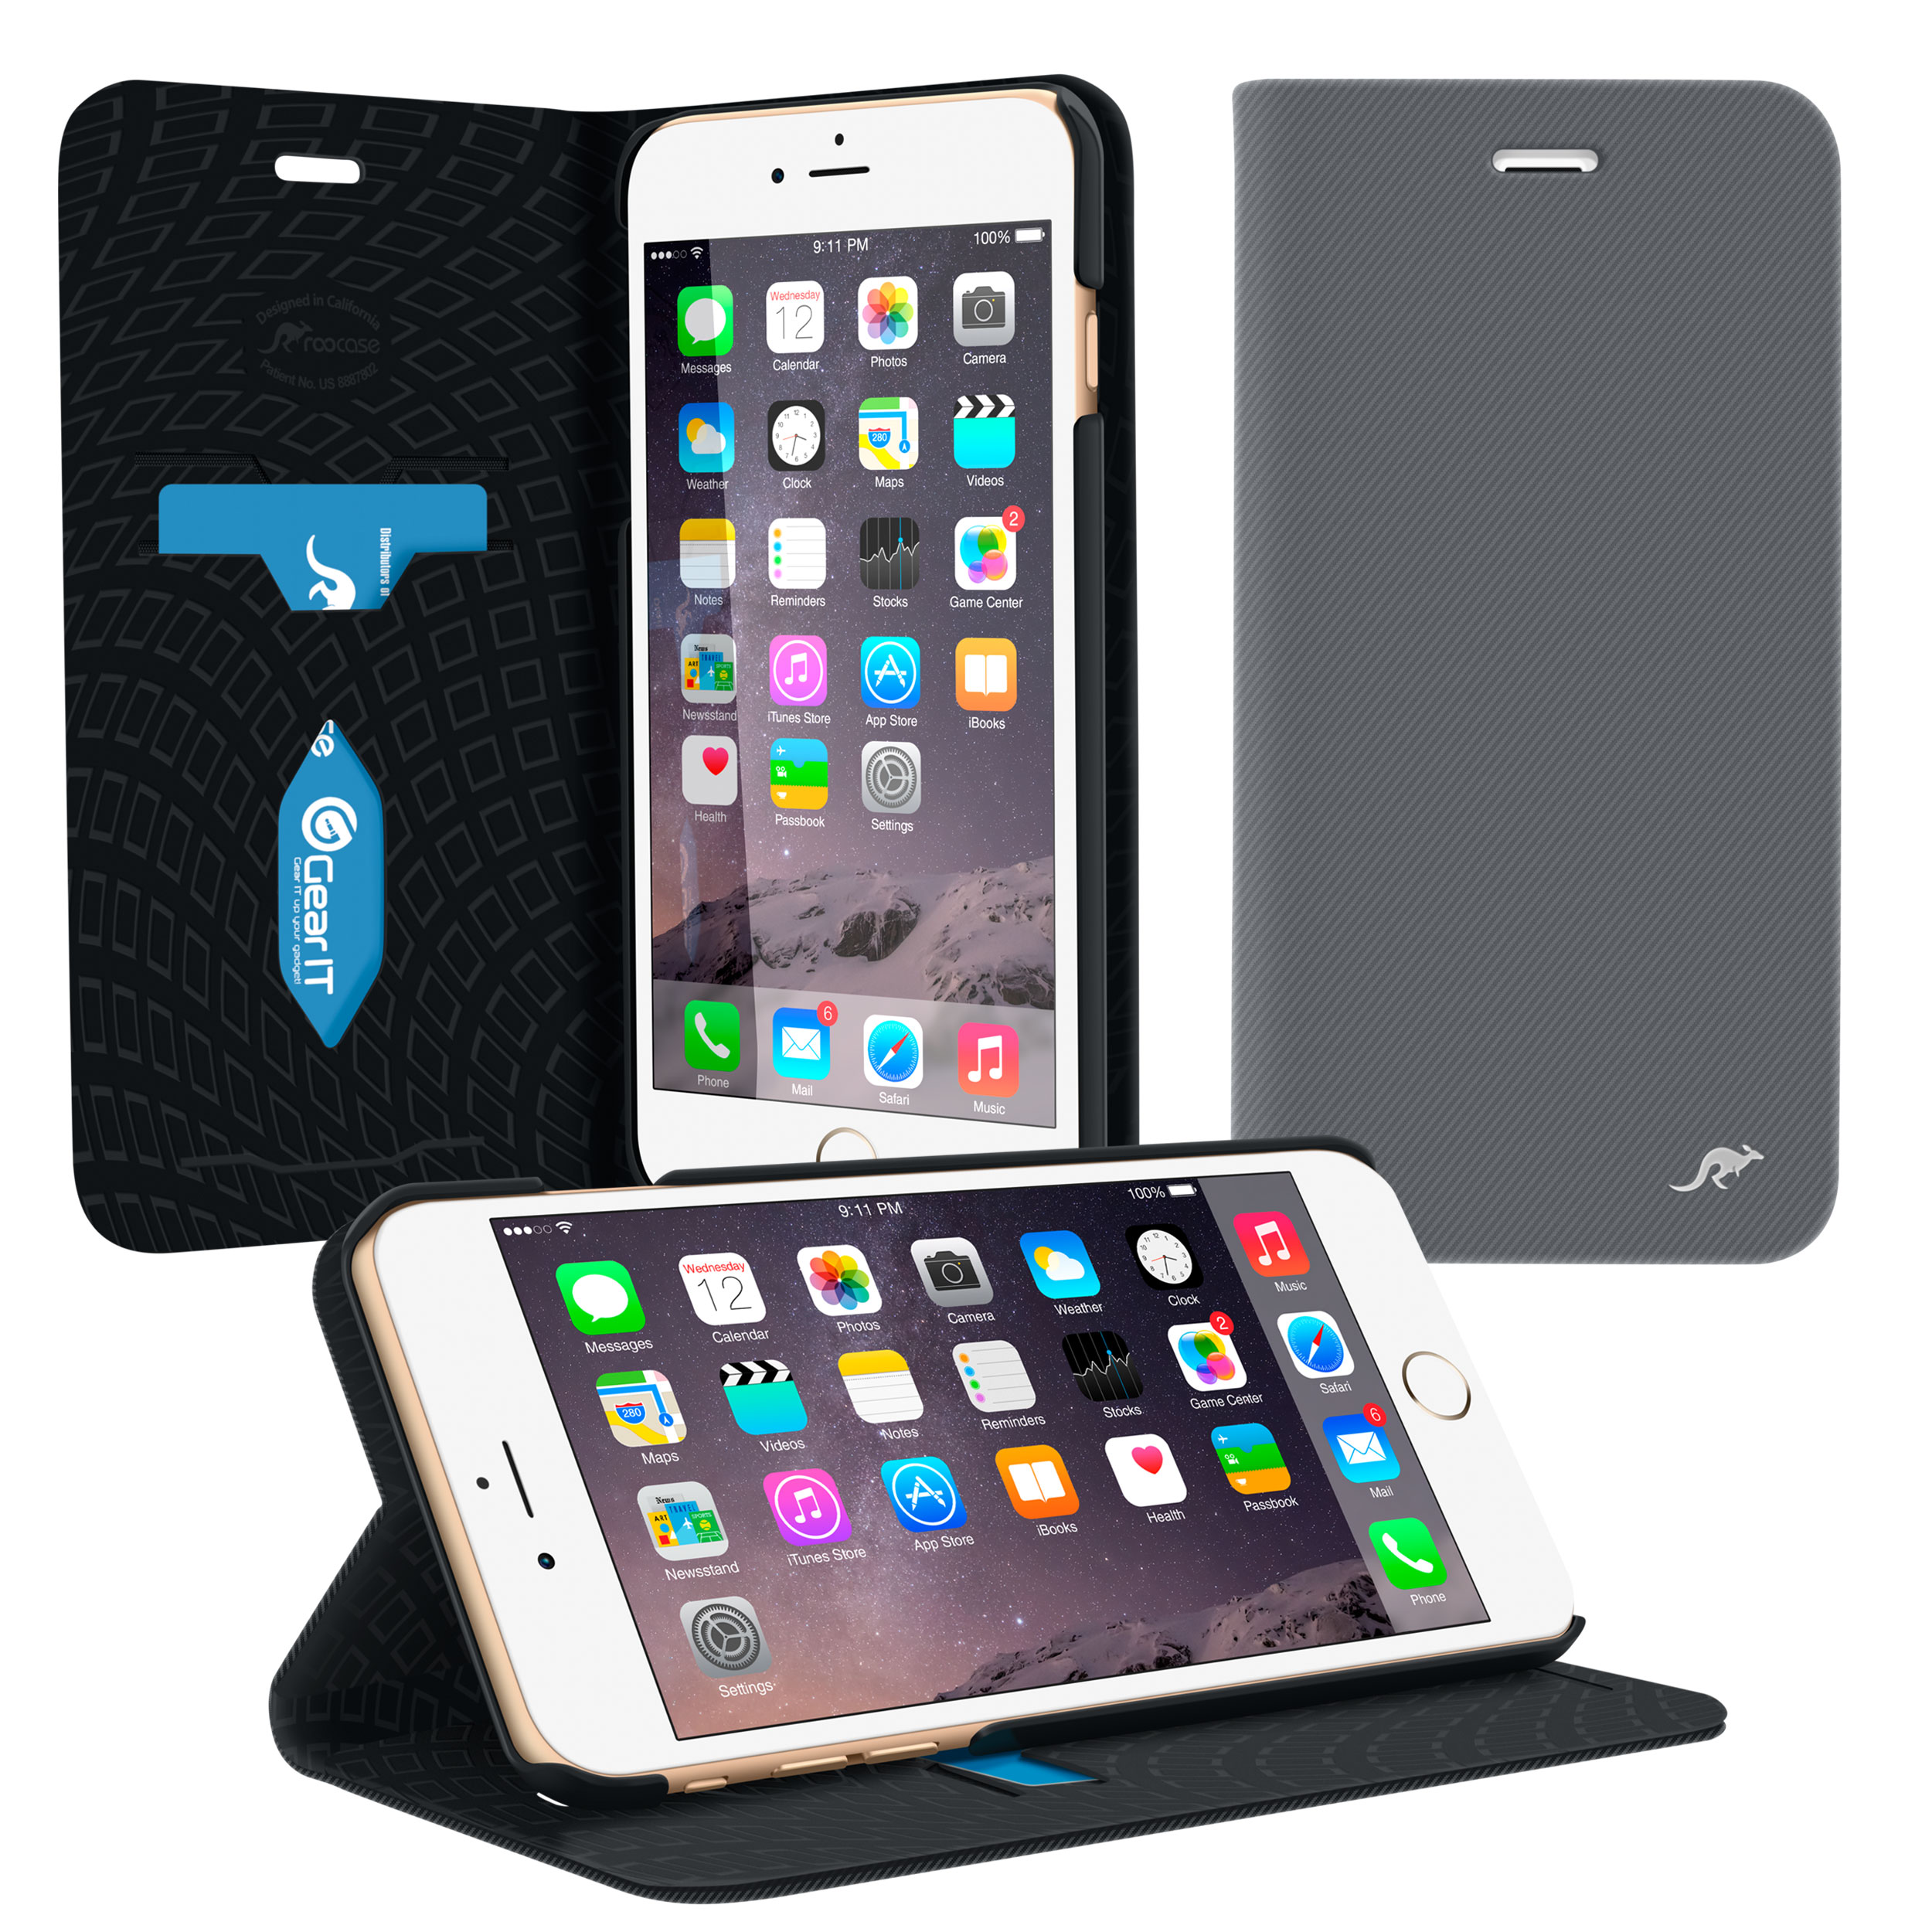 rooCASE iPhone 6s / iPhone 6 Wallet Case, Prestige Premium PU Leather Wallet Folio with Stand Flip Cover and Card ID Holder for Apple iPhone 6 / 6s 4.7